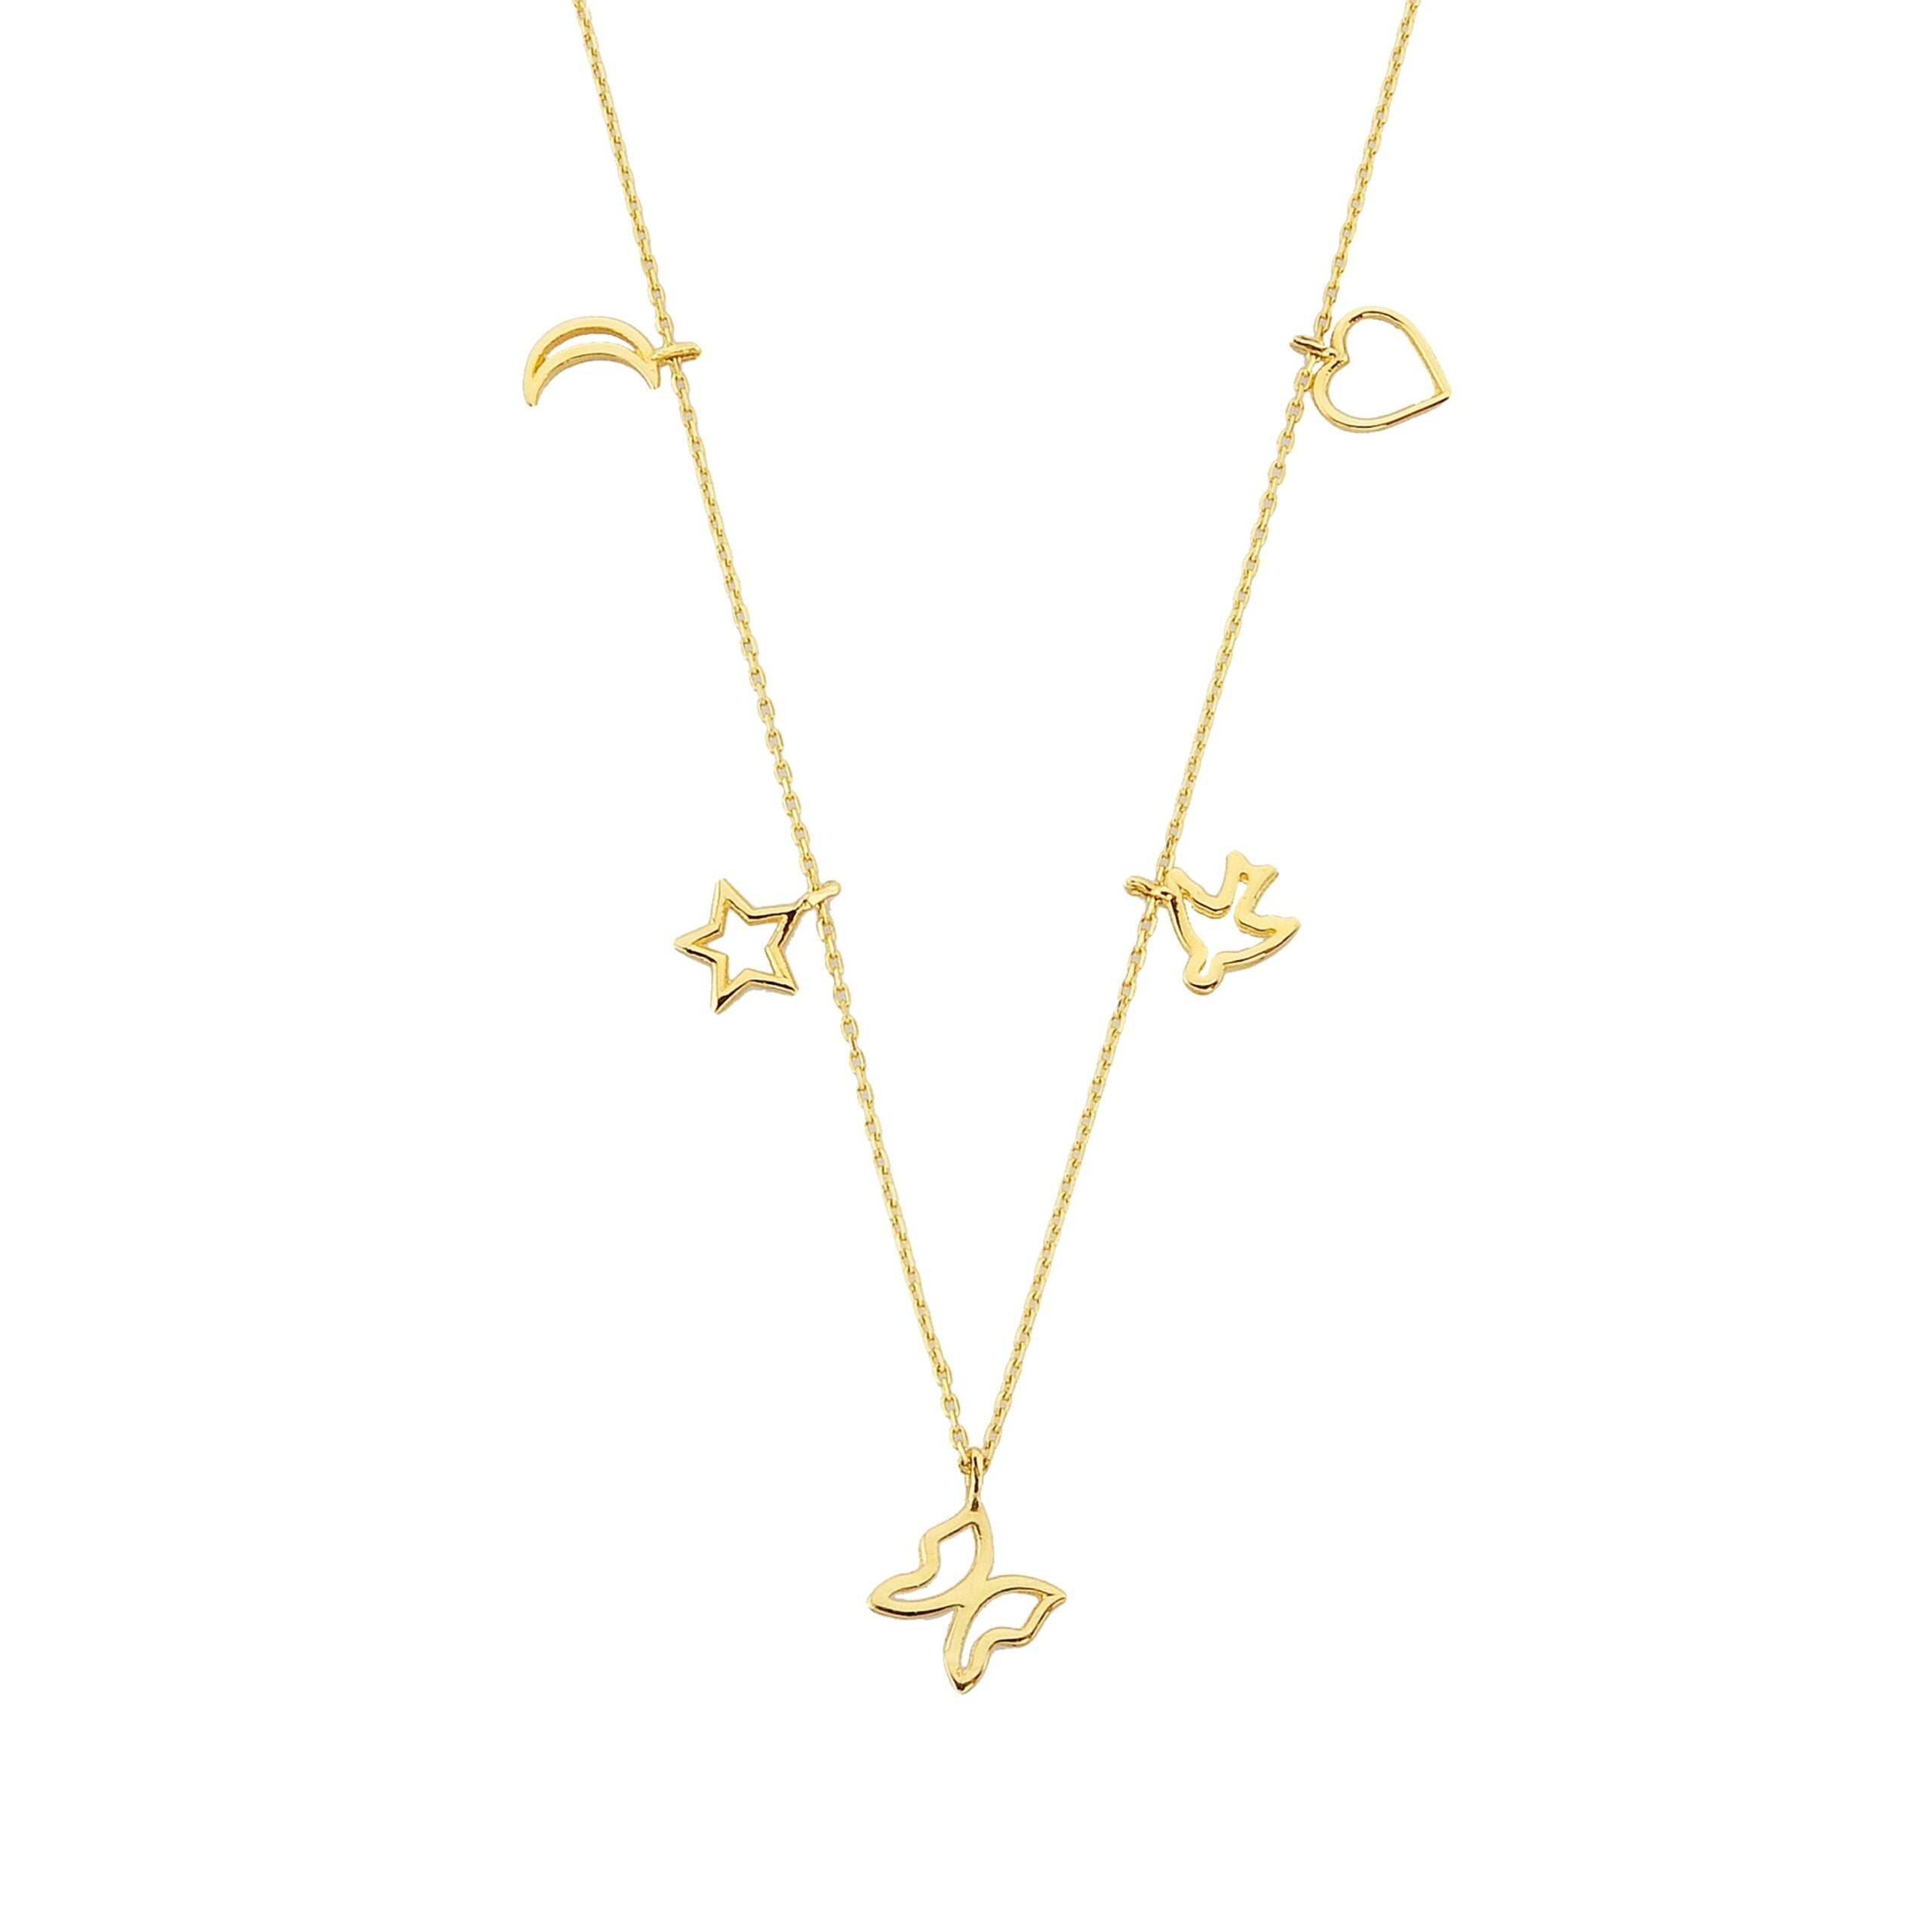 Good Luck Lucky Charm Pendant Necklace for Women 14K Real Solid Gold with Butterfly Star Moon Heart Swallow Pieces Birthday Christmas Mother's Day Gift Jewelry